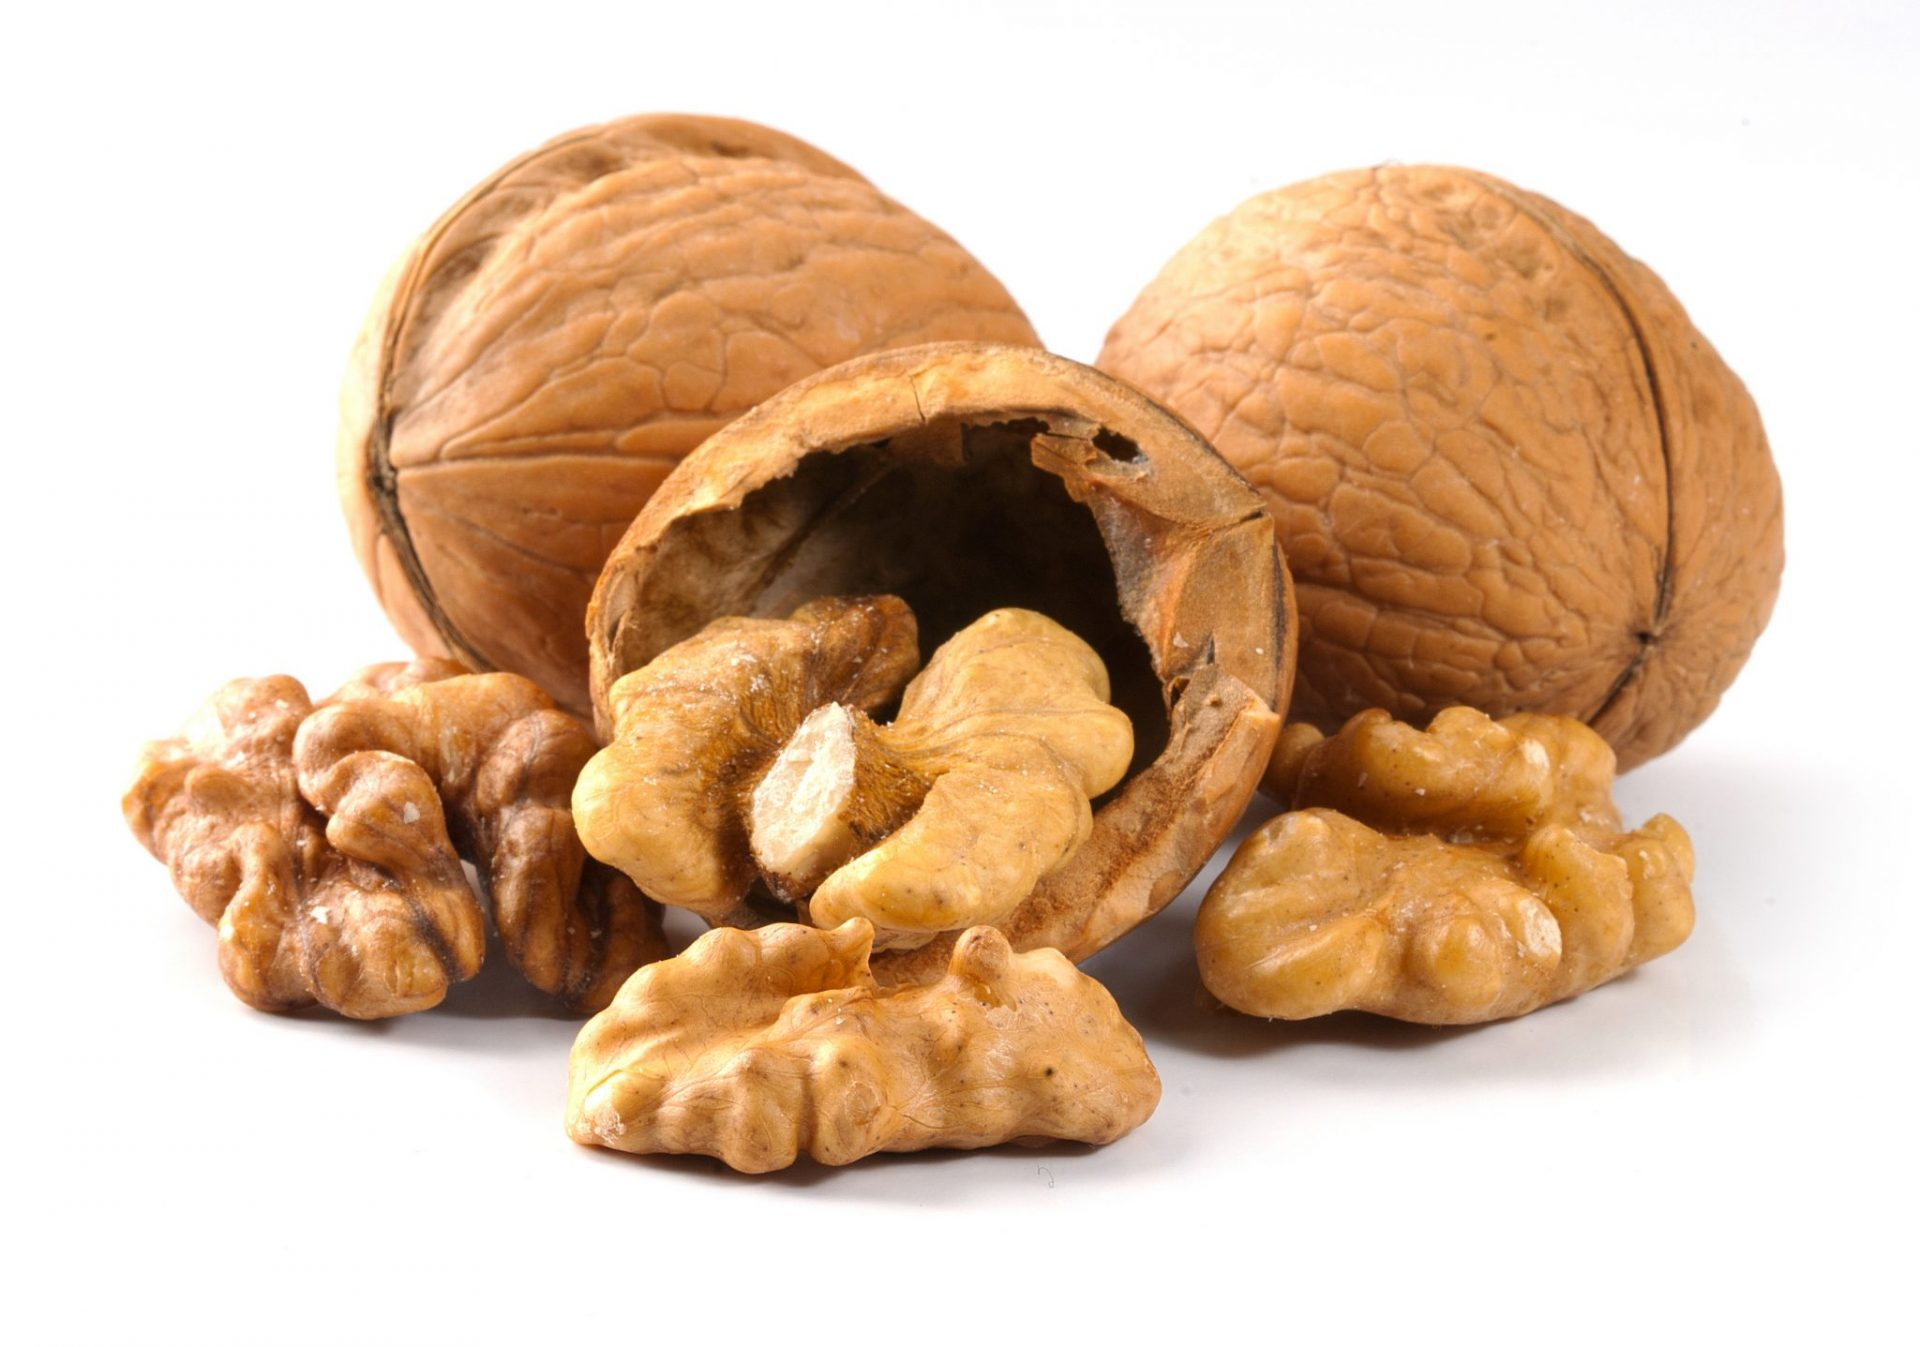 All about the healing properties of walnuts 7